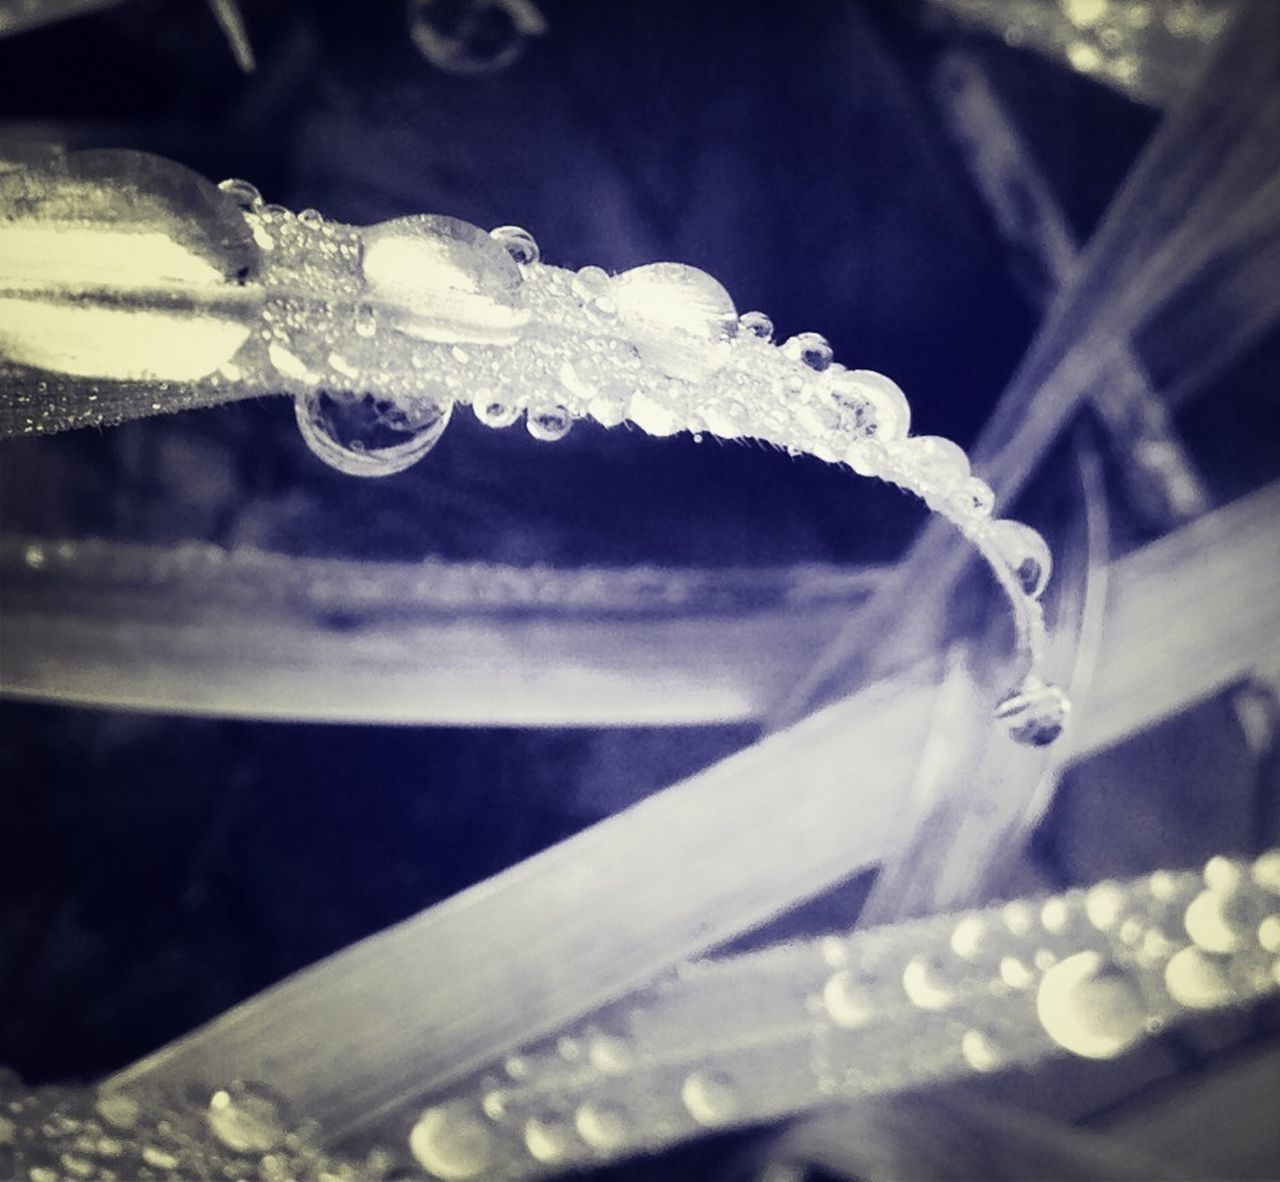 cold temperature, ice, frozen, winter, close-up, icicle, no people, water, frost, drop, outdoors, day, hanging, purity, snow, ice crystal, freshness, nature, beauty in nature, dripping